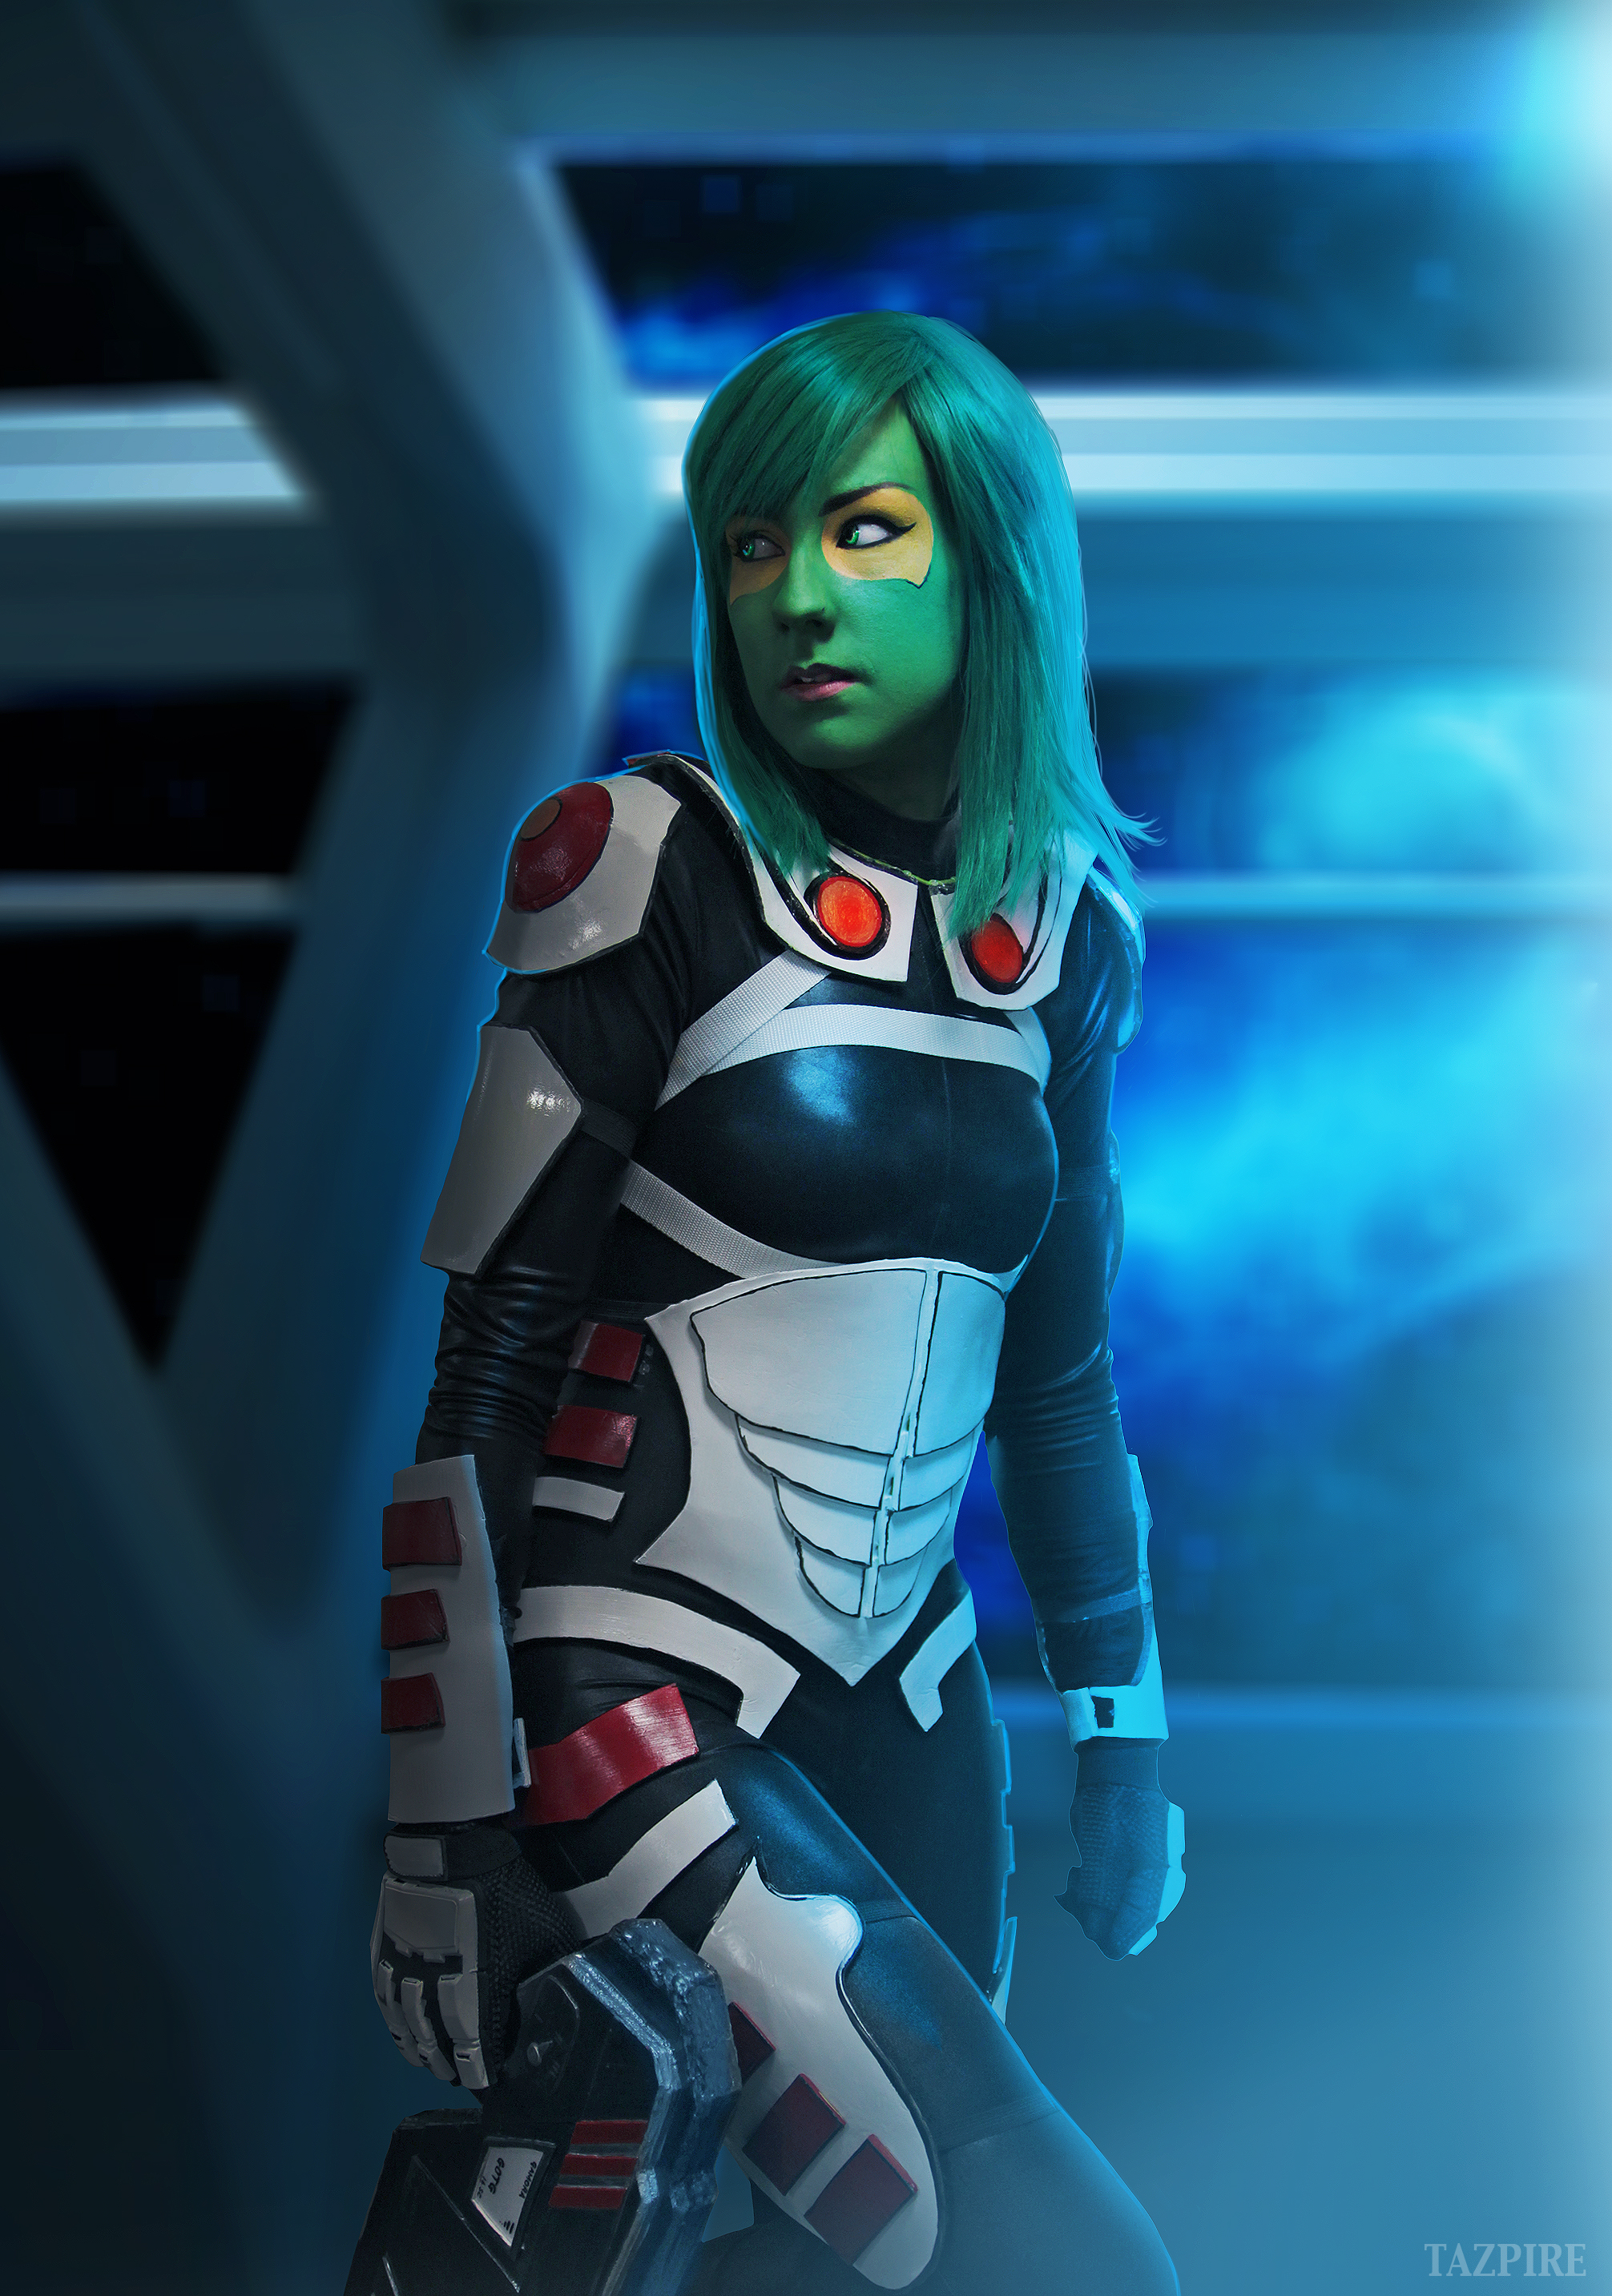 SpiderCam Cosplay  is Gamora | Photo by:  CamraKaze